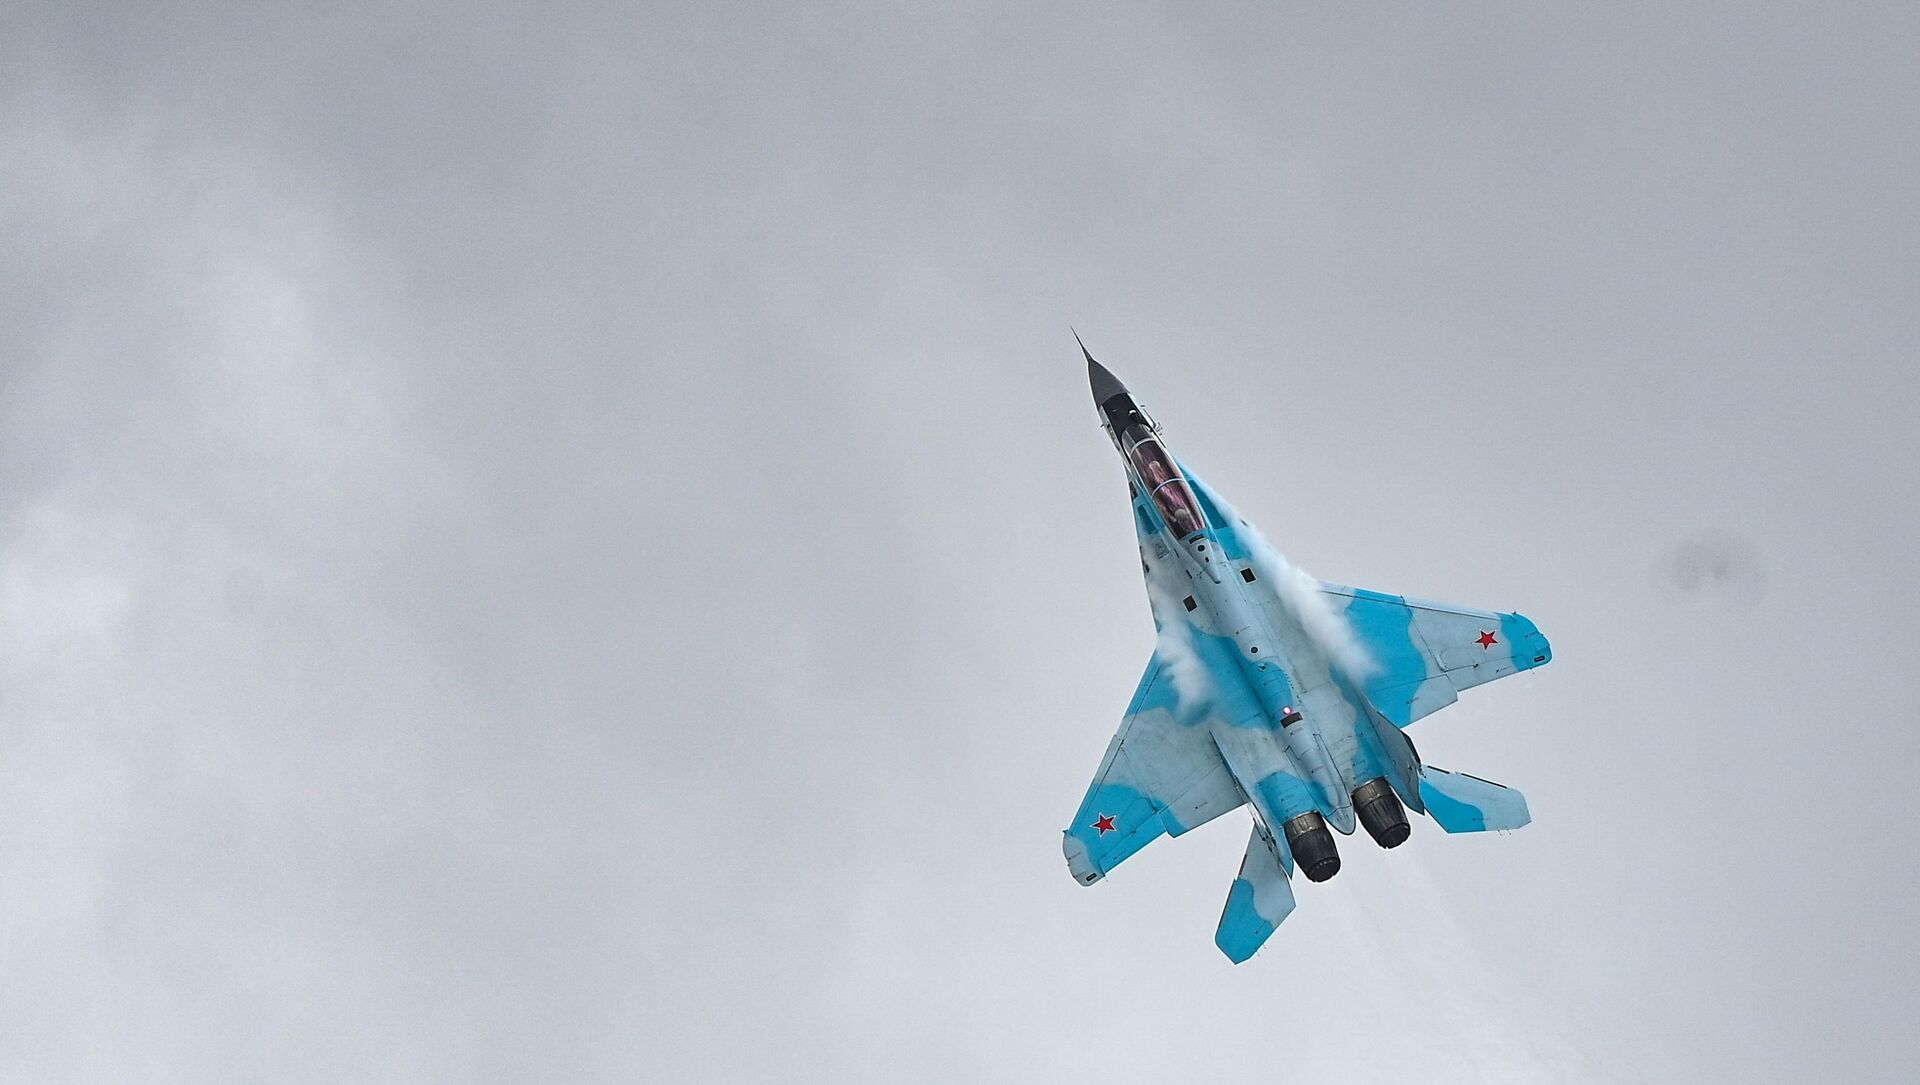 Upgraded Russian fourth-generation jet Su-35 NATO reporting names: Flanker-E) during MAKS-2021 air show - Sputnik International, 1920, 31.07.2021